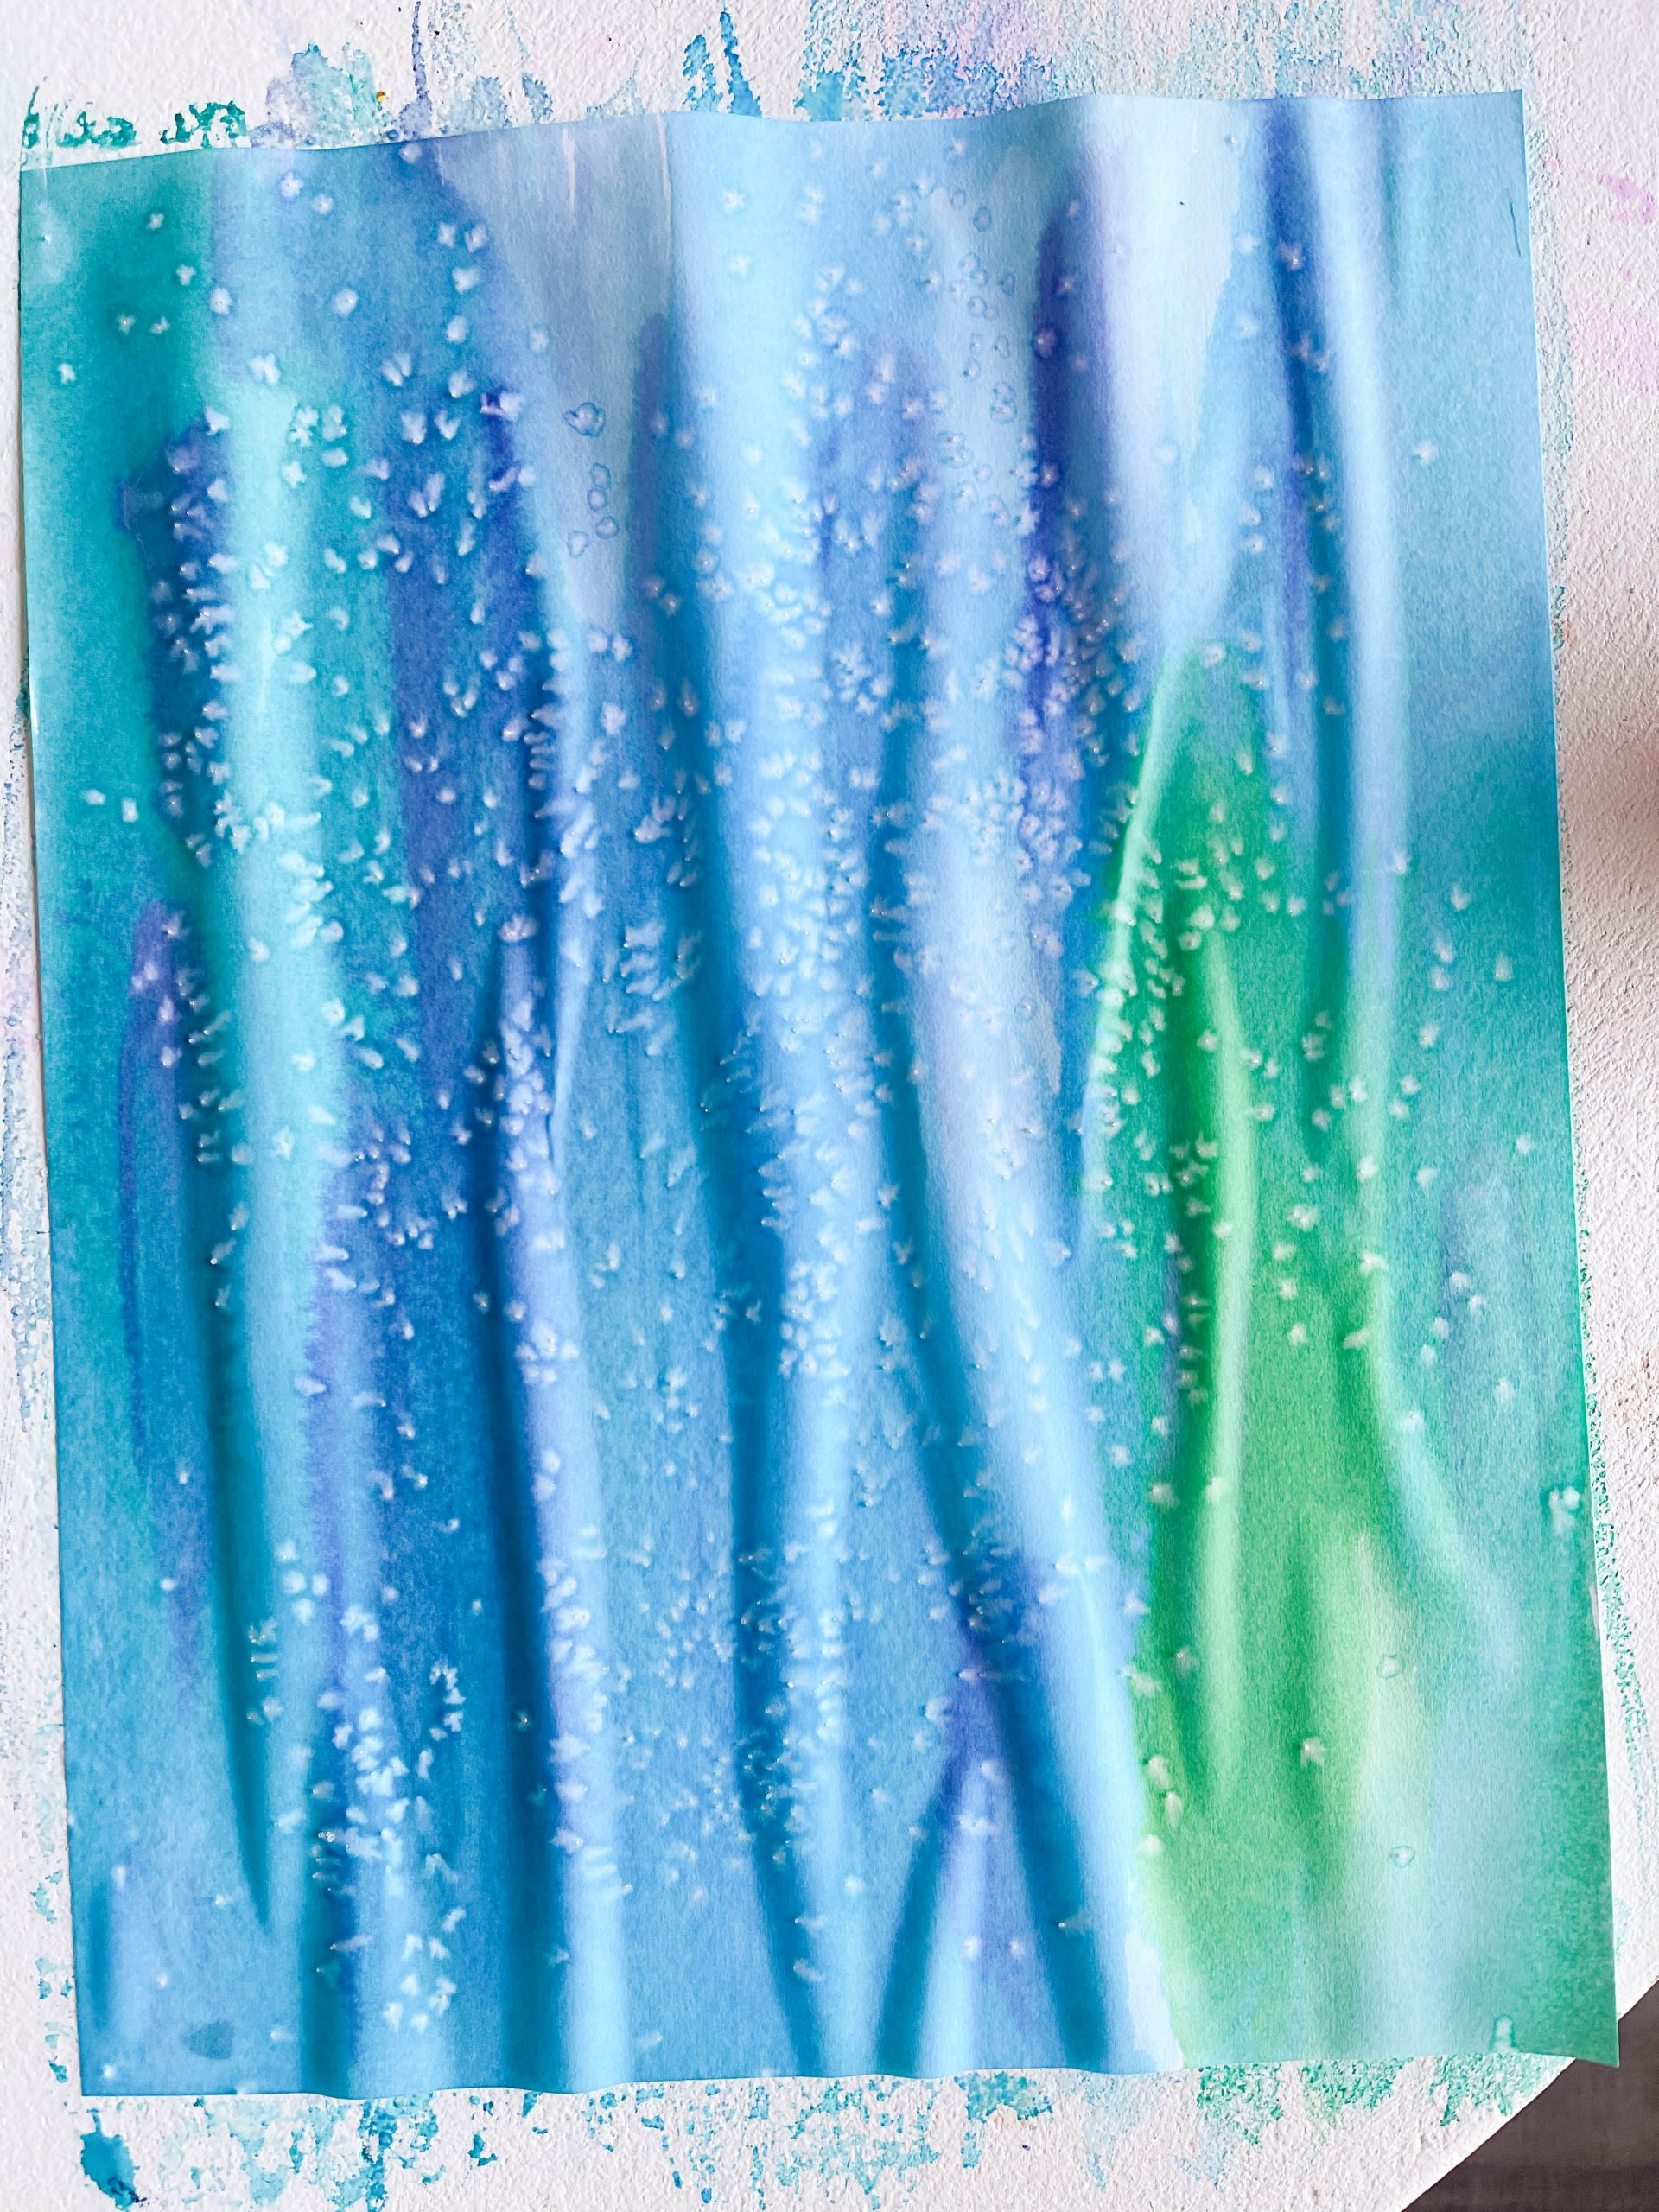 paper painted blue and green with watercolors